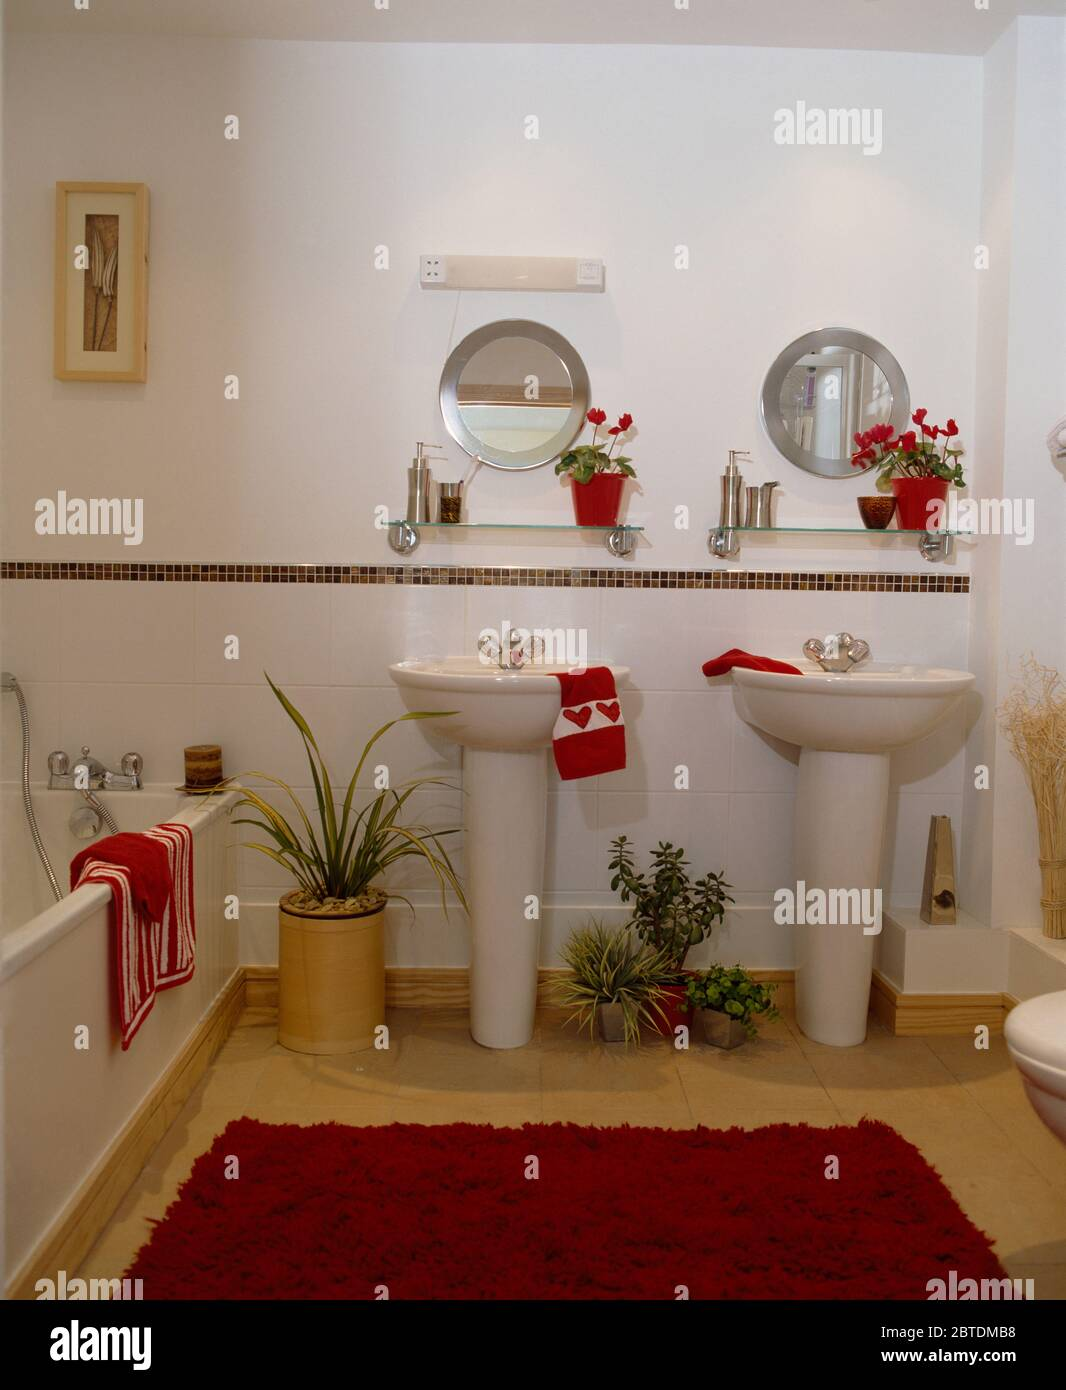 Double Pedestal Basins In White Bathroom With Red Accents Stock Photo Alamy